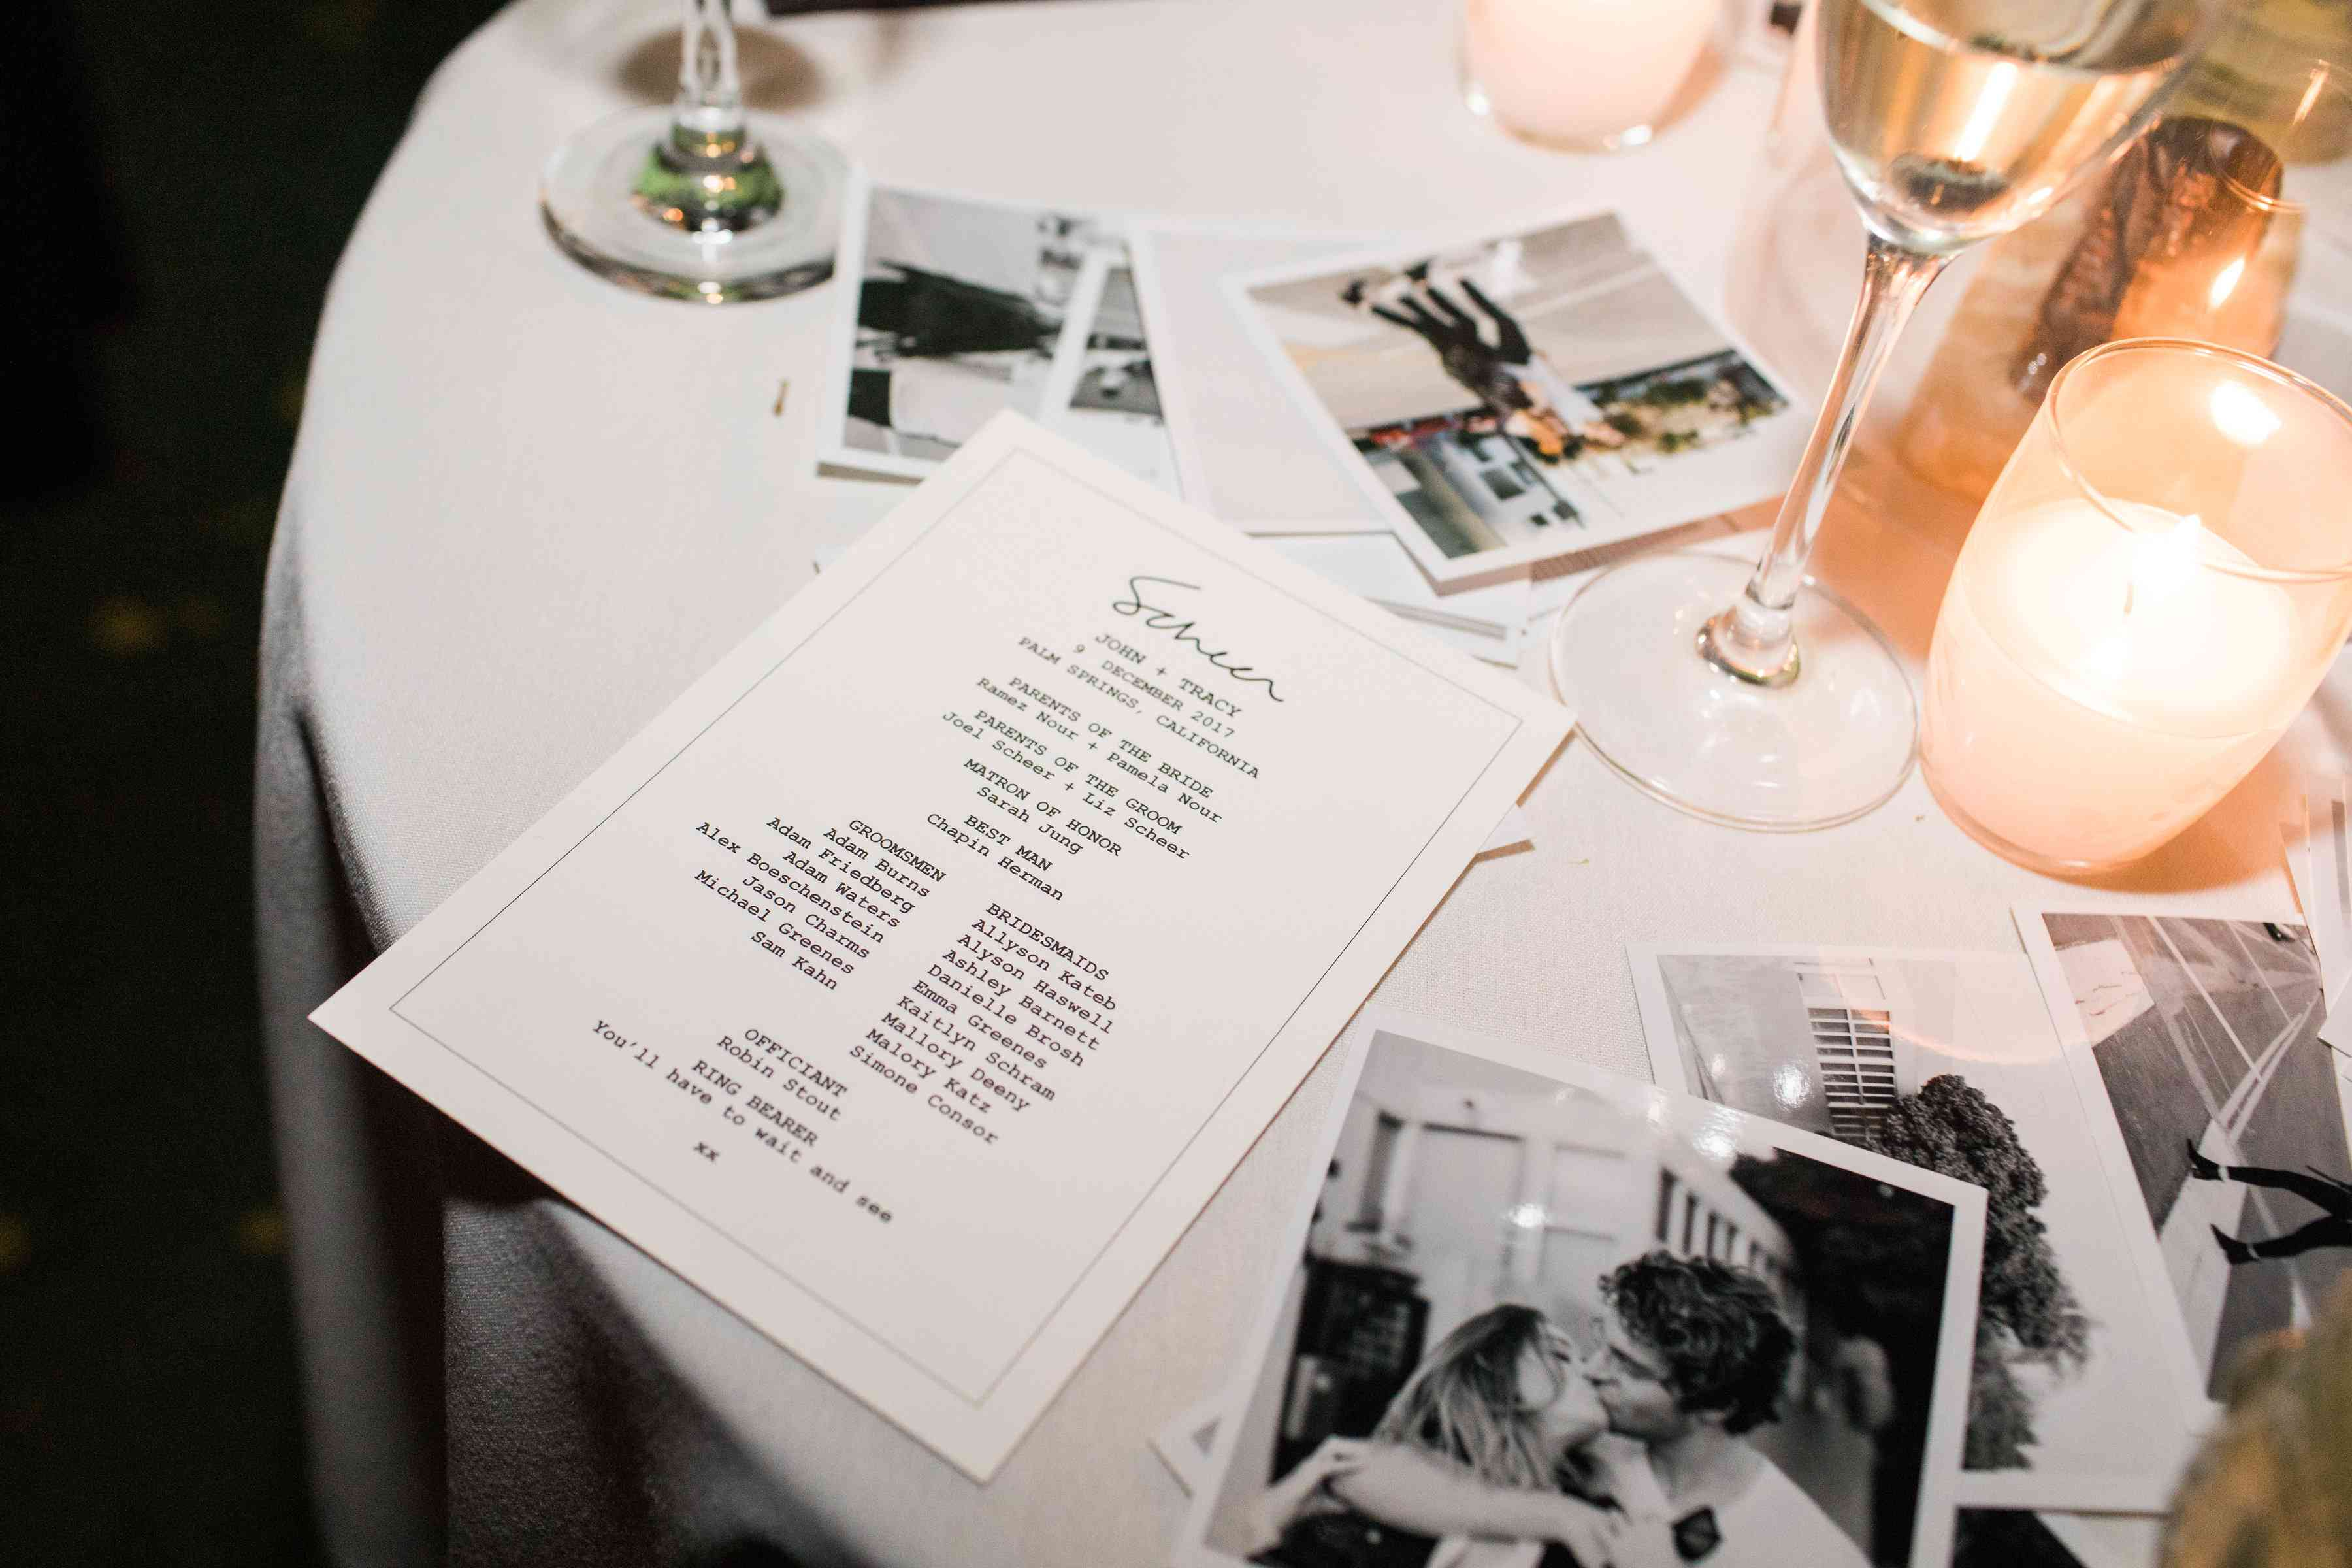 <p>polaroid photos from guests</p><br><br>